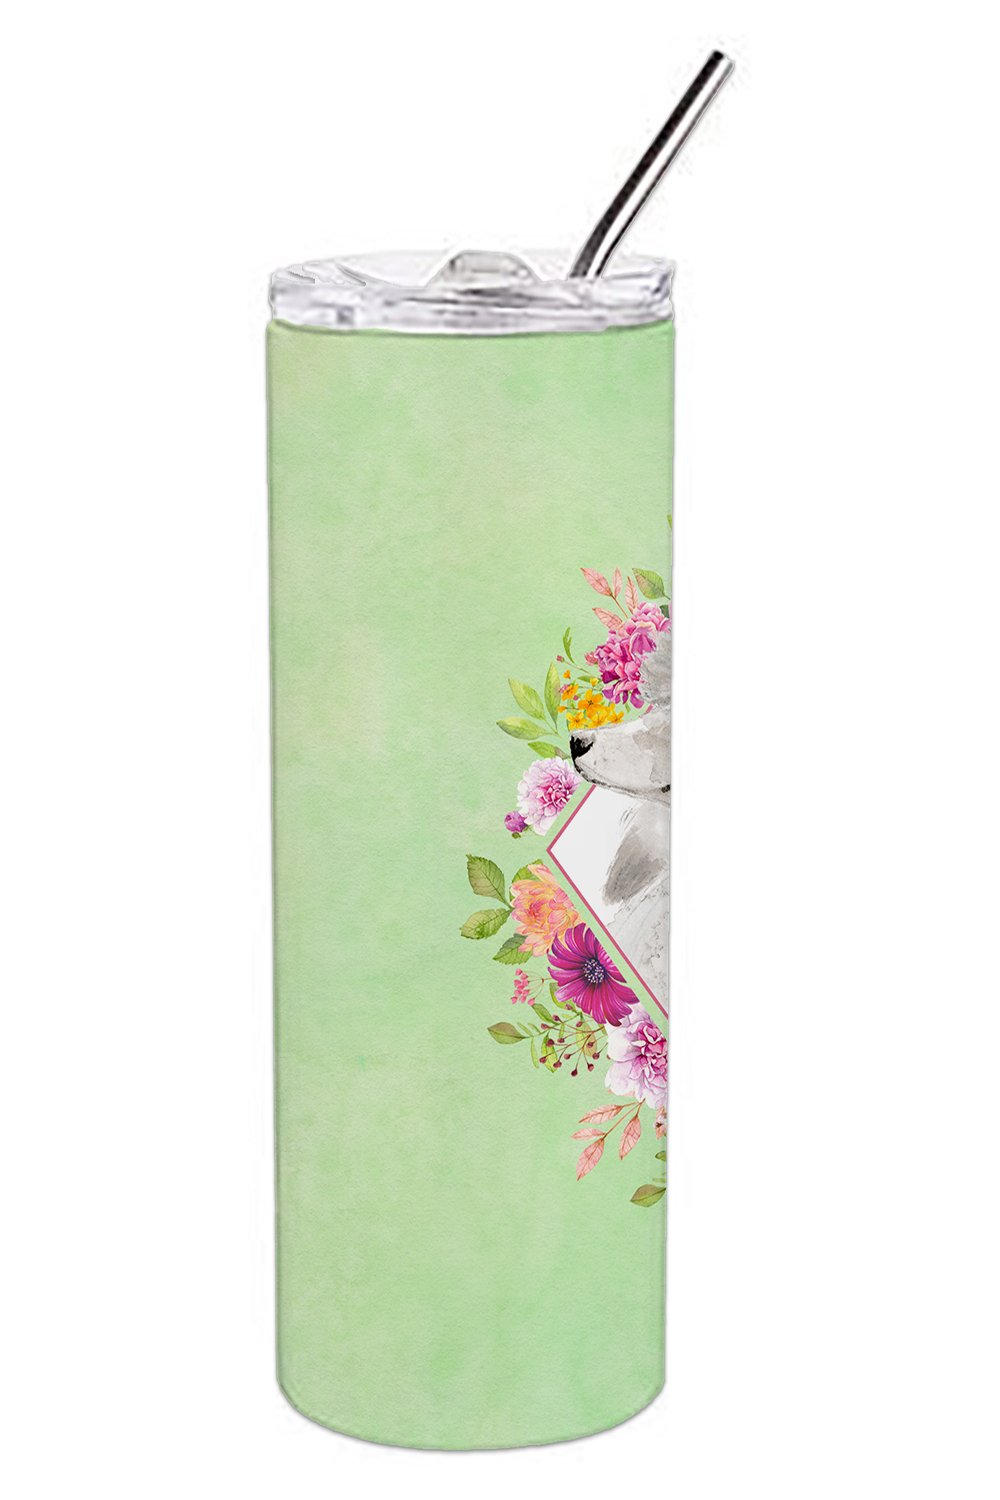 White Standard Poodle Green Flowers Double Walled Stainless Steel 20 oz Skinny Tumbler CK4360TBL20 by Caroline's Treasures